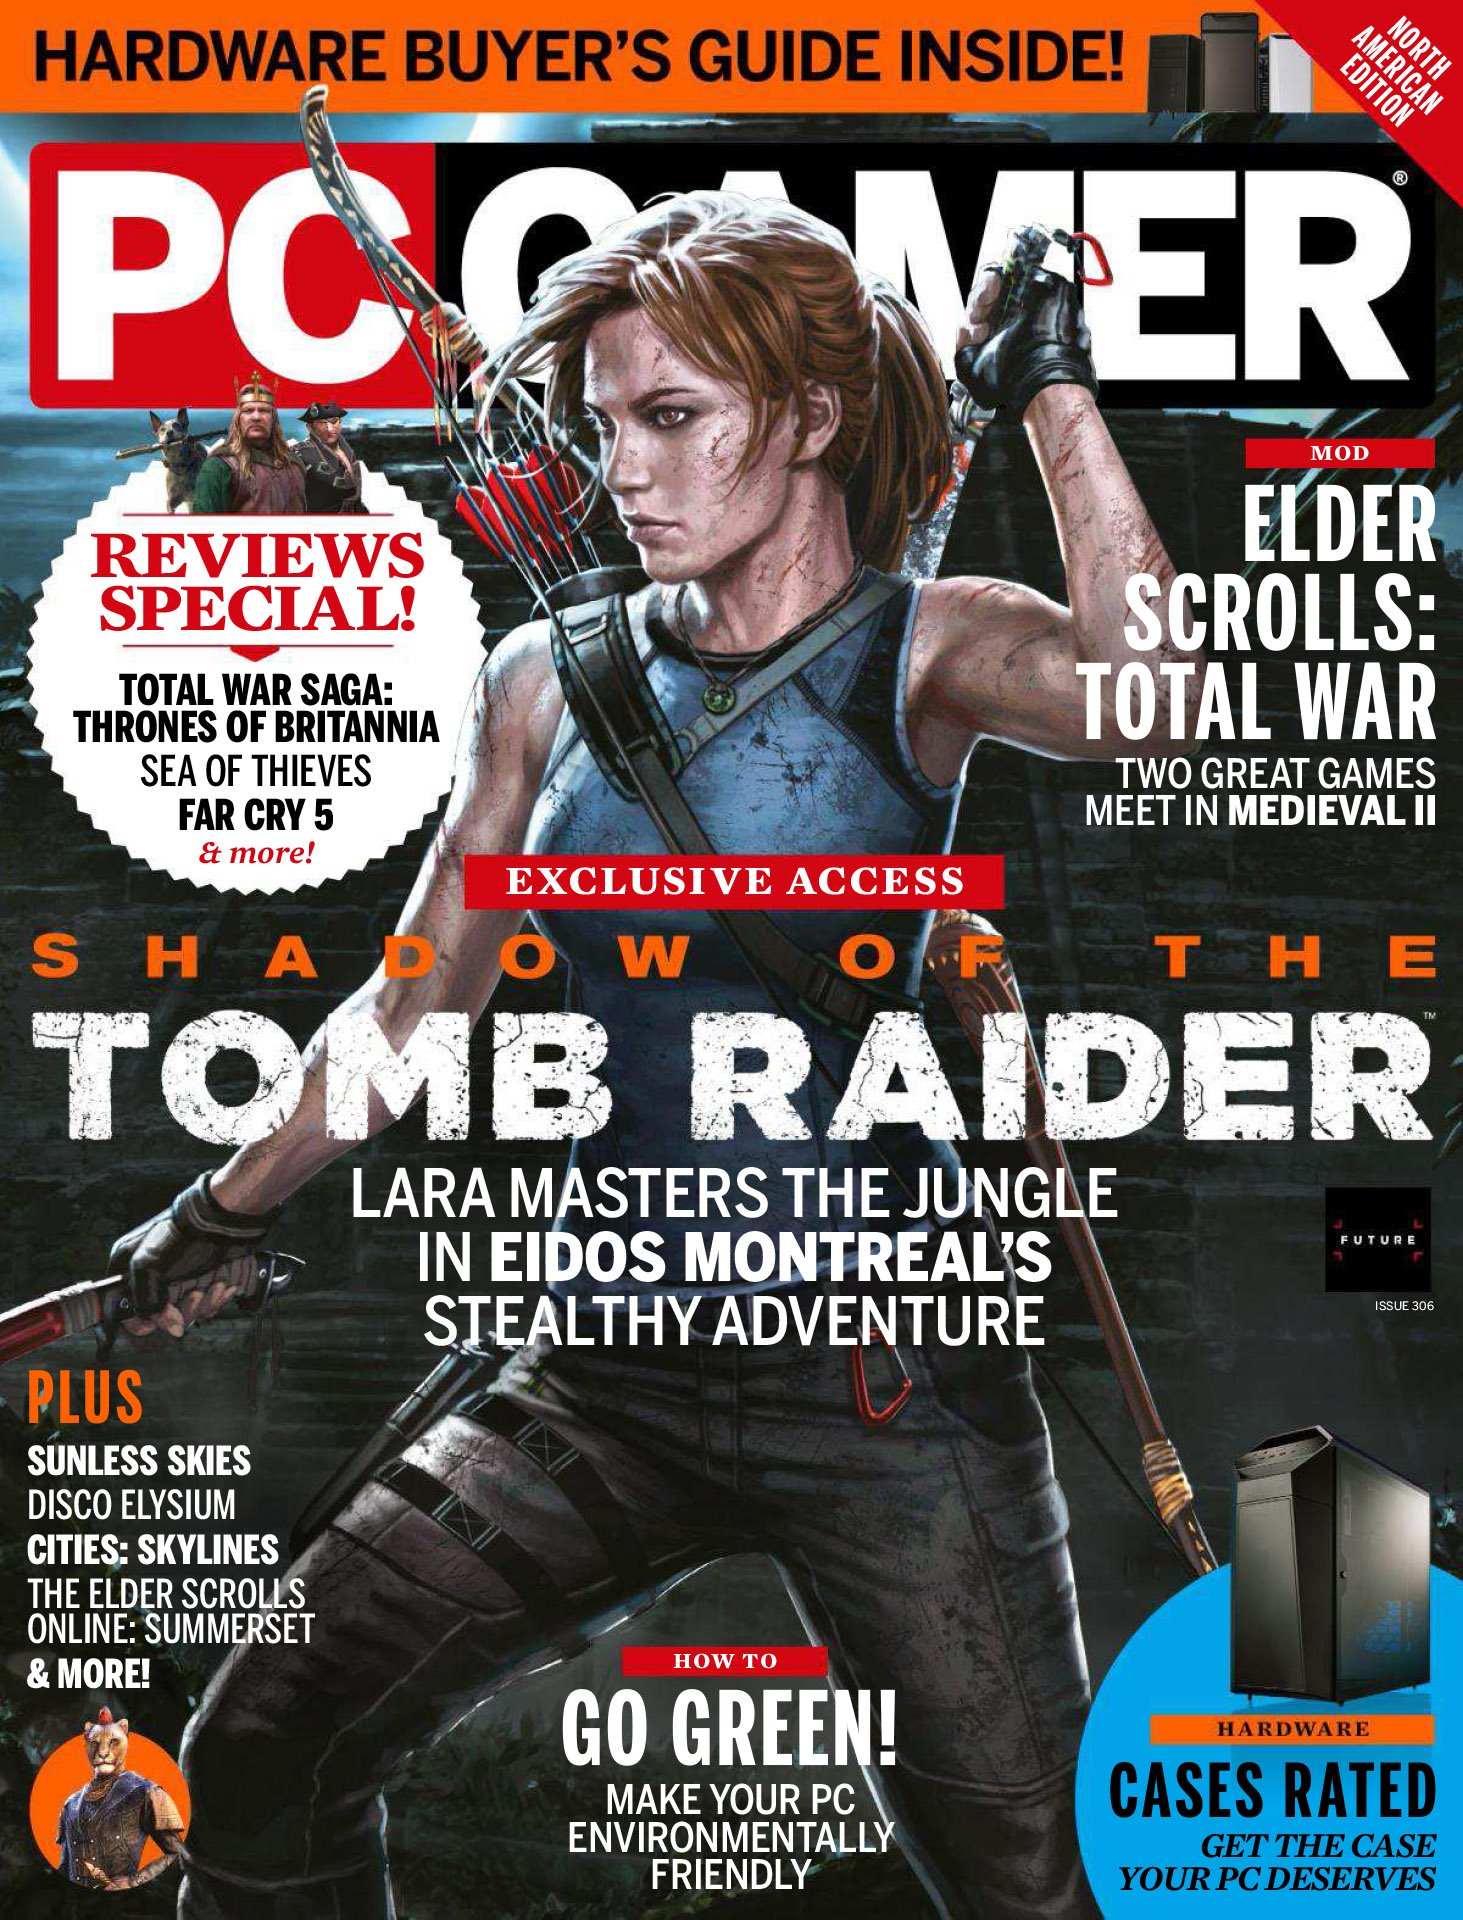 PC Gamer Issue 306 (July 2018)